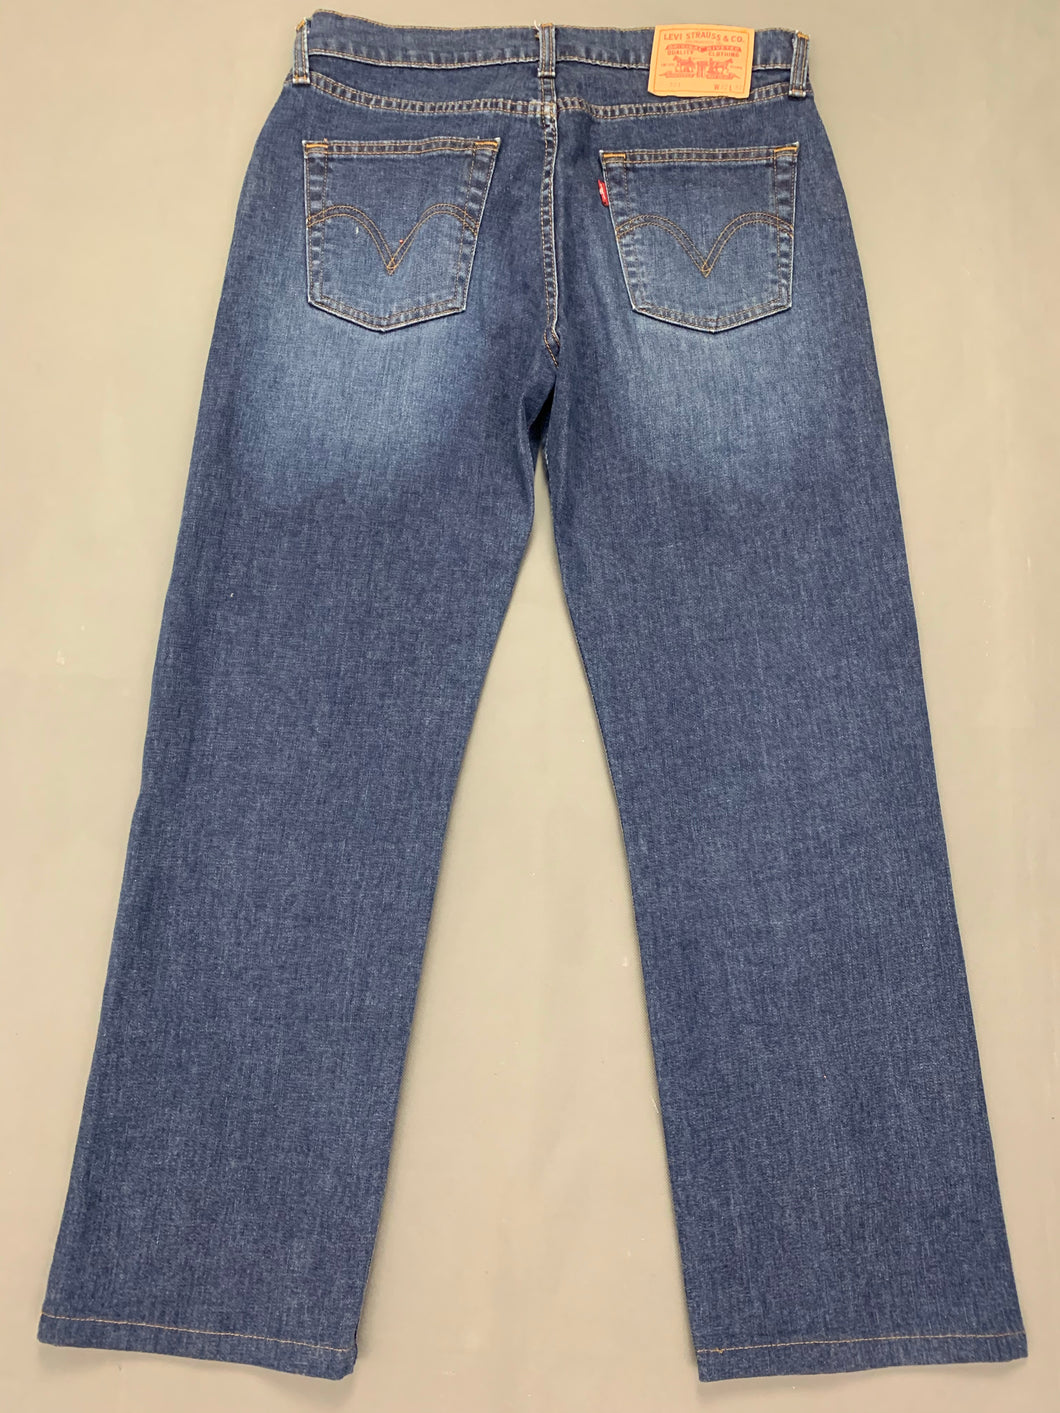 LEVI STRAUSS & Co Mens Blue Denim LEVI'S 751 JEANS Size Waist 32